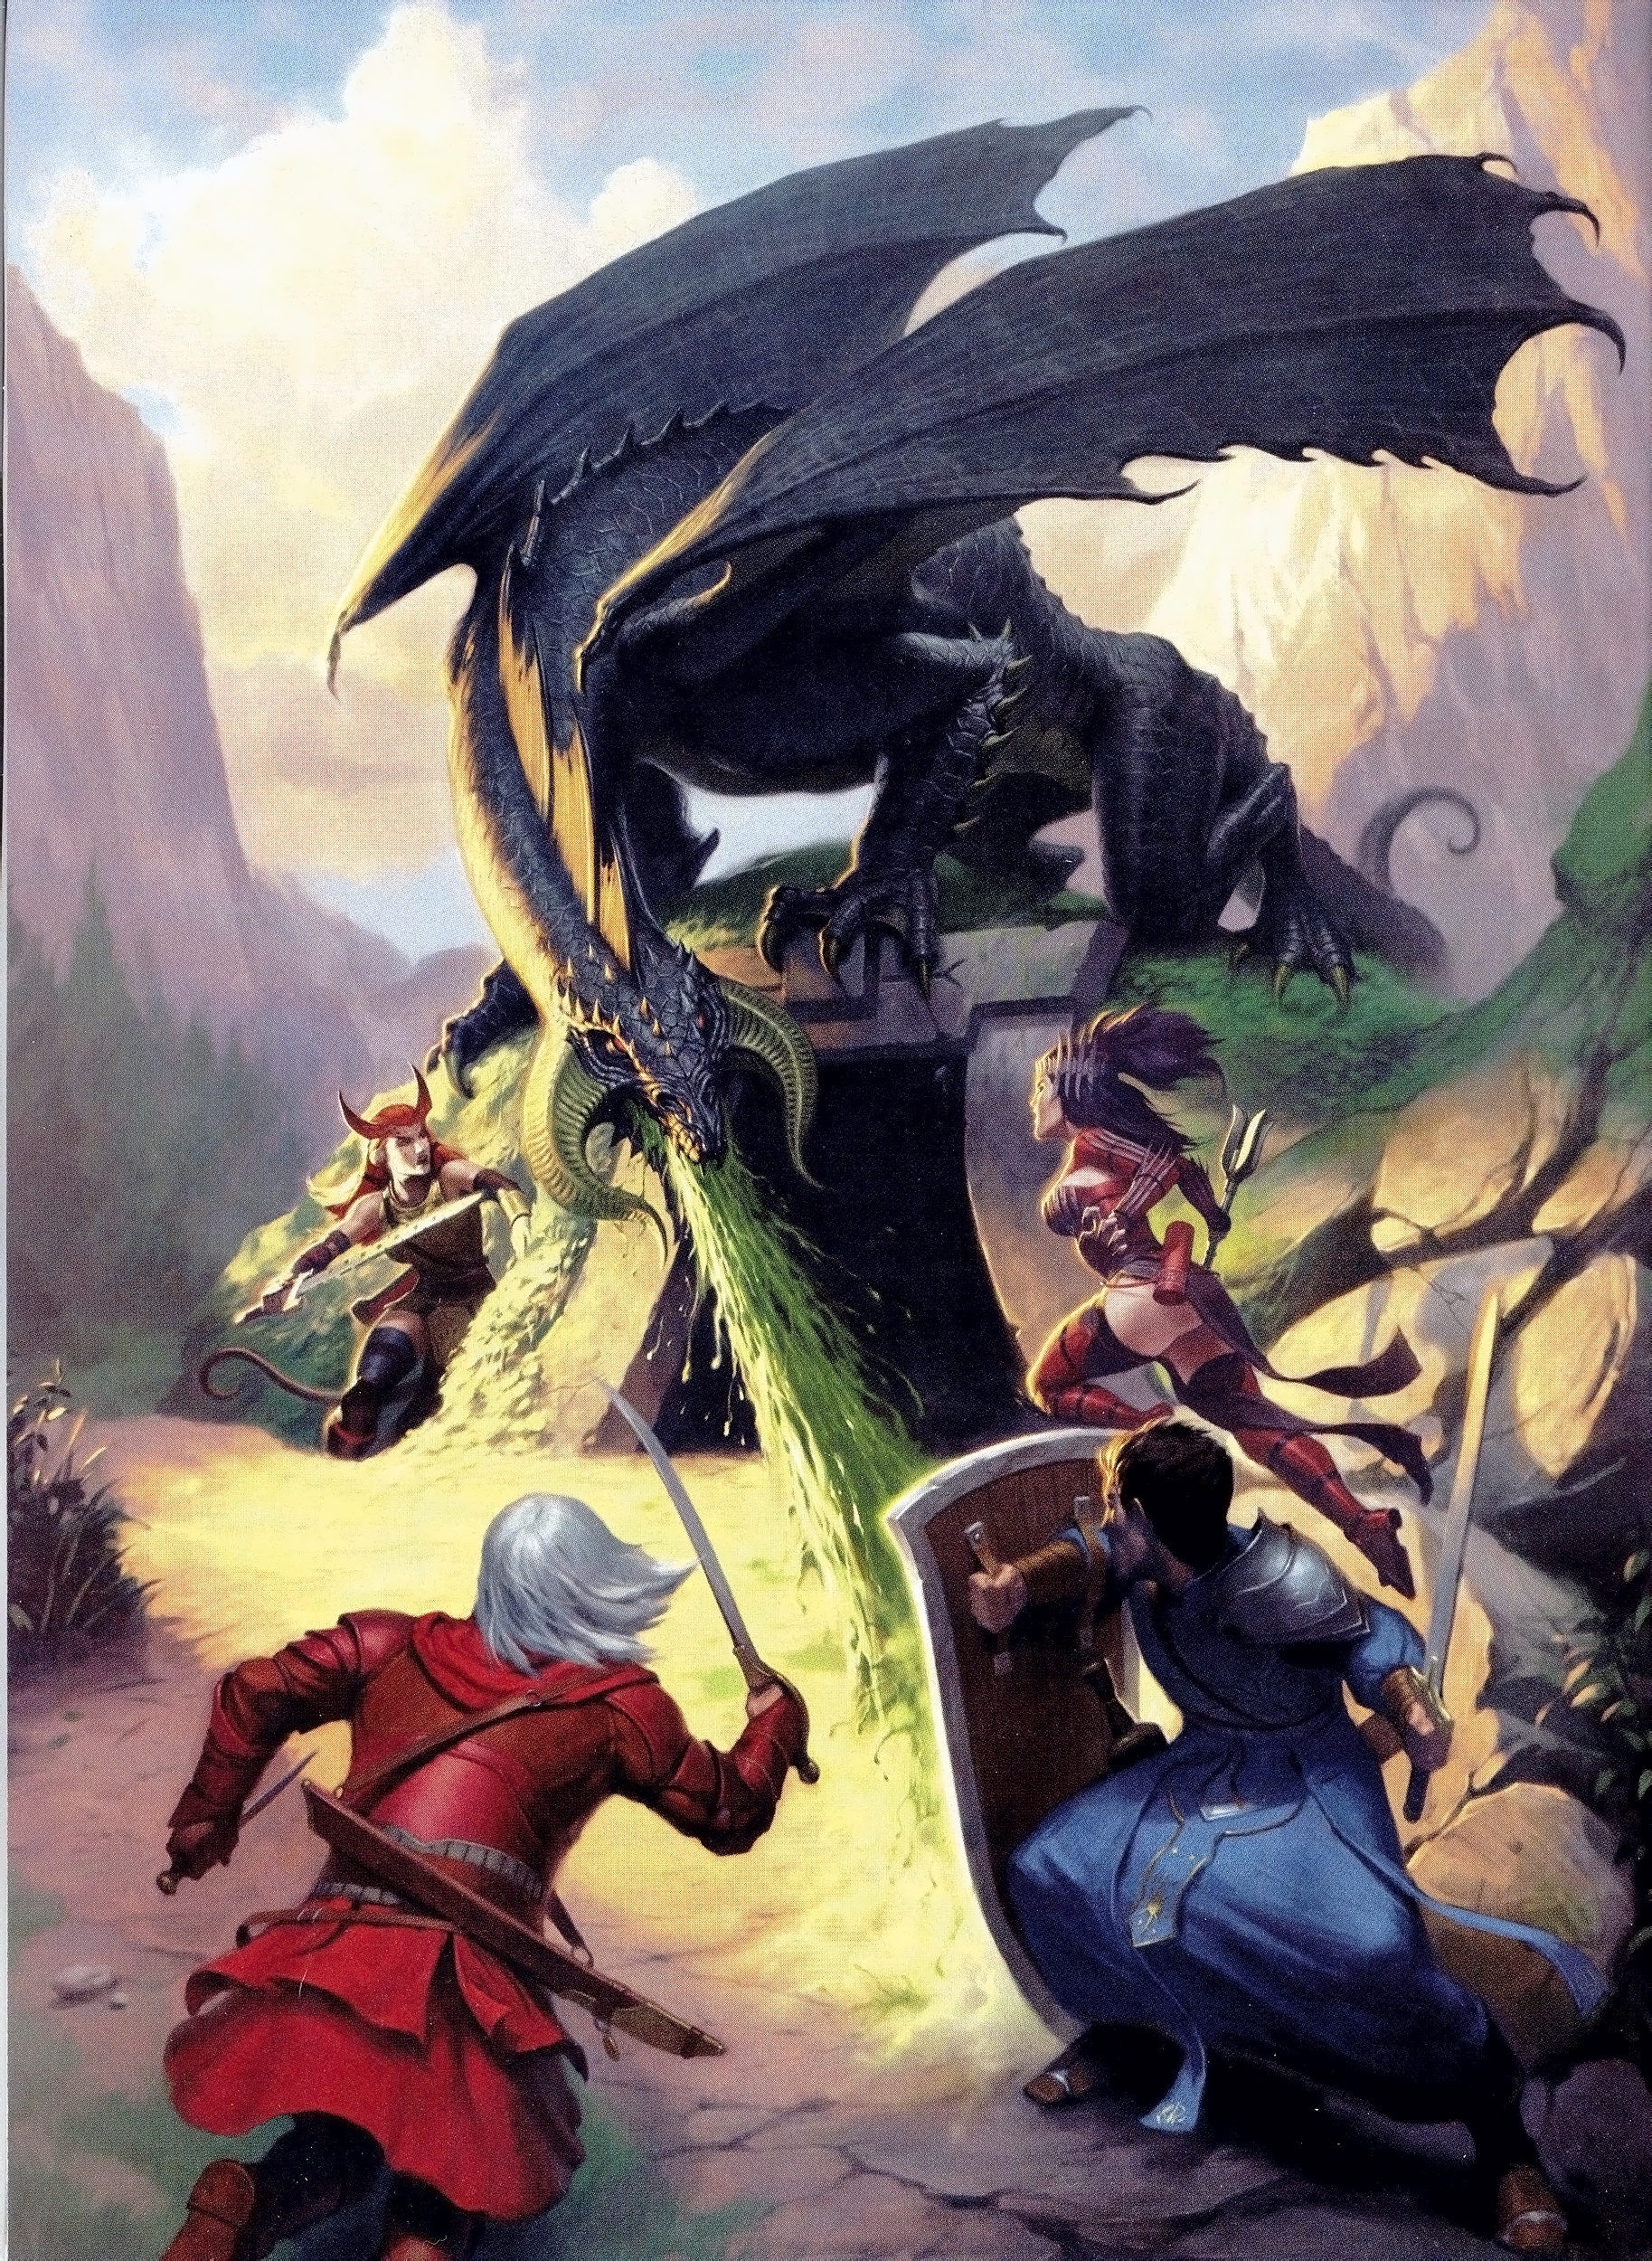 black dragon Tiefling e compagni contro drago nero - by James Ryman Dungeon Magazine #129 (2005-12) © Wizards of the Coast & Hasbro